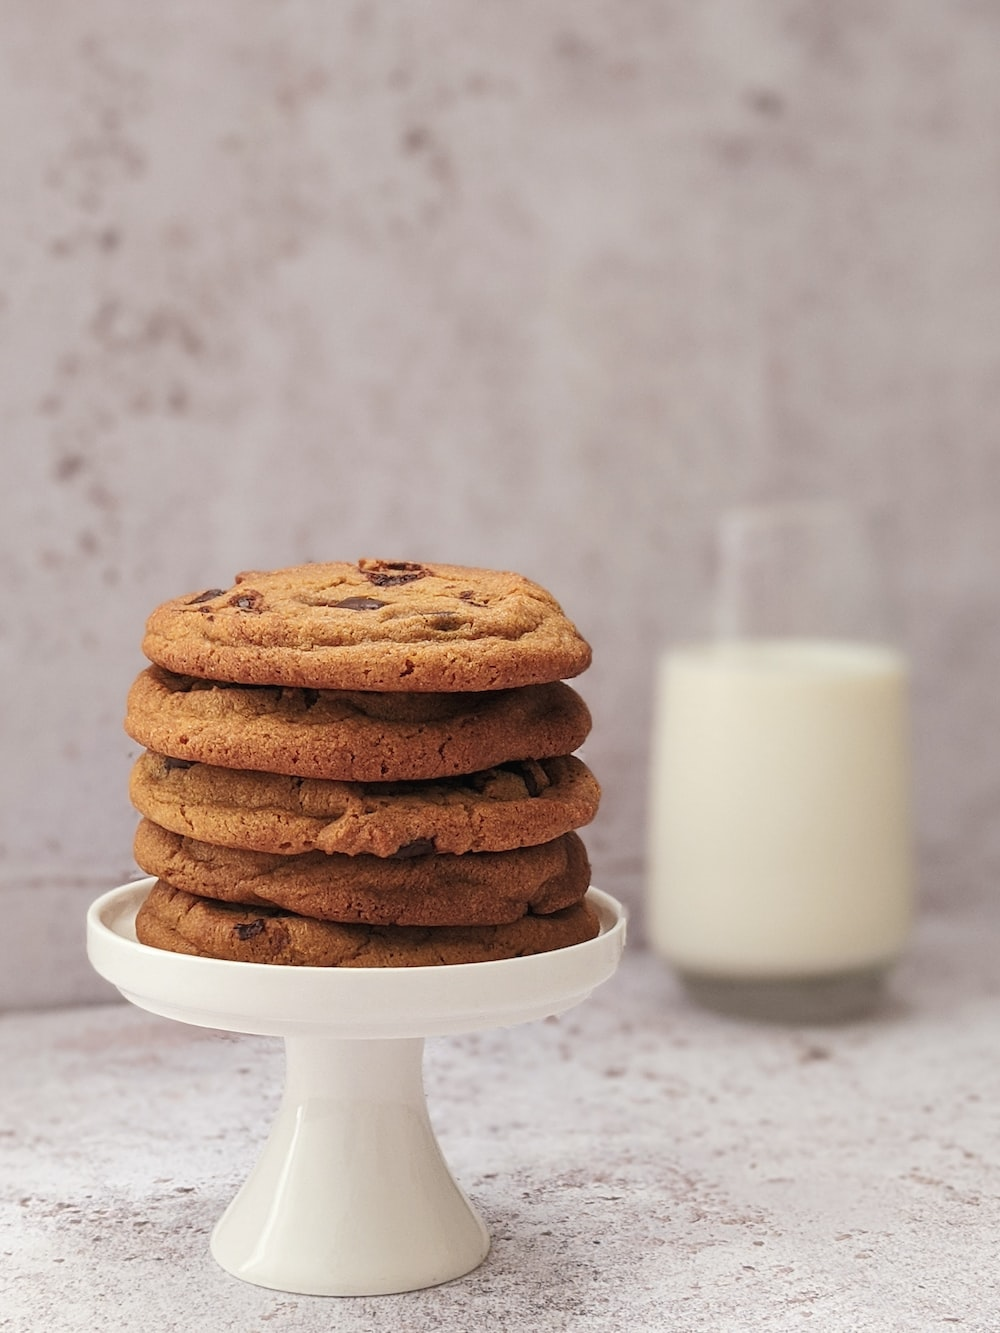 cookies on white ceramic footed tray